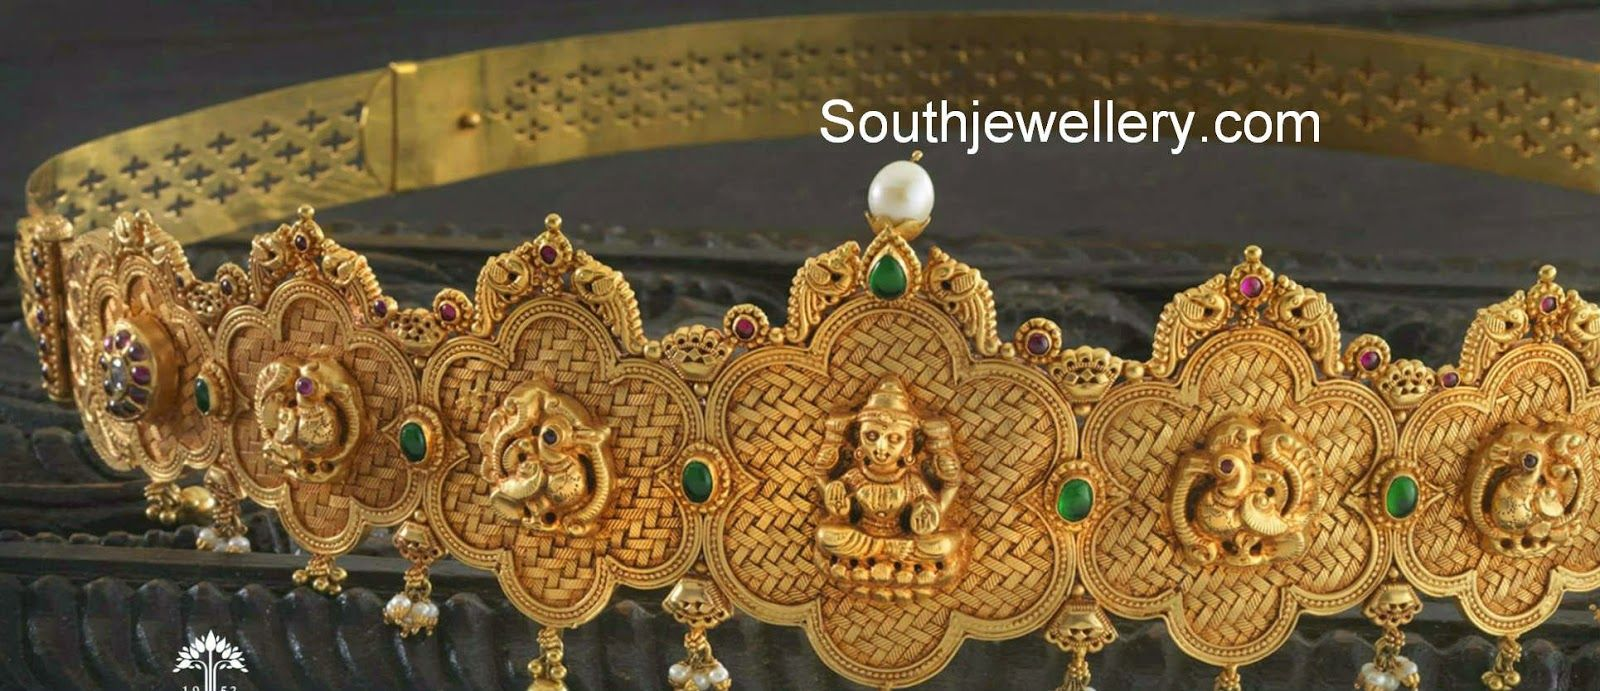 Gold vaddanam oddiyanam kammarpatta waisbelt designs south indian - Traditional Gold Vaddanam South Indian Jewellerywaist Beltsjewellery Designsjewelry